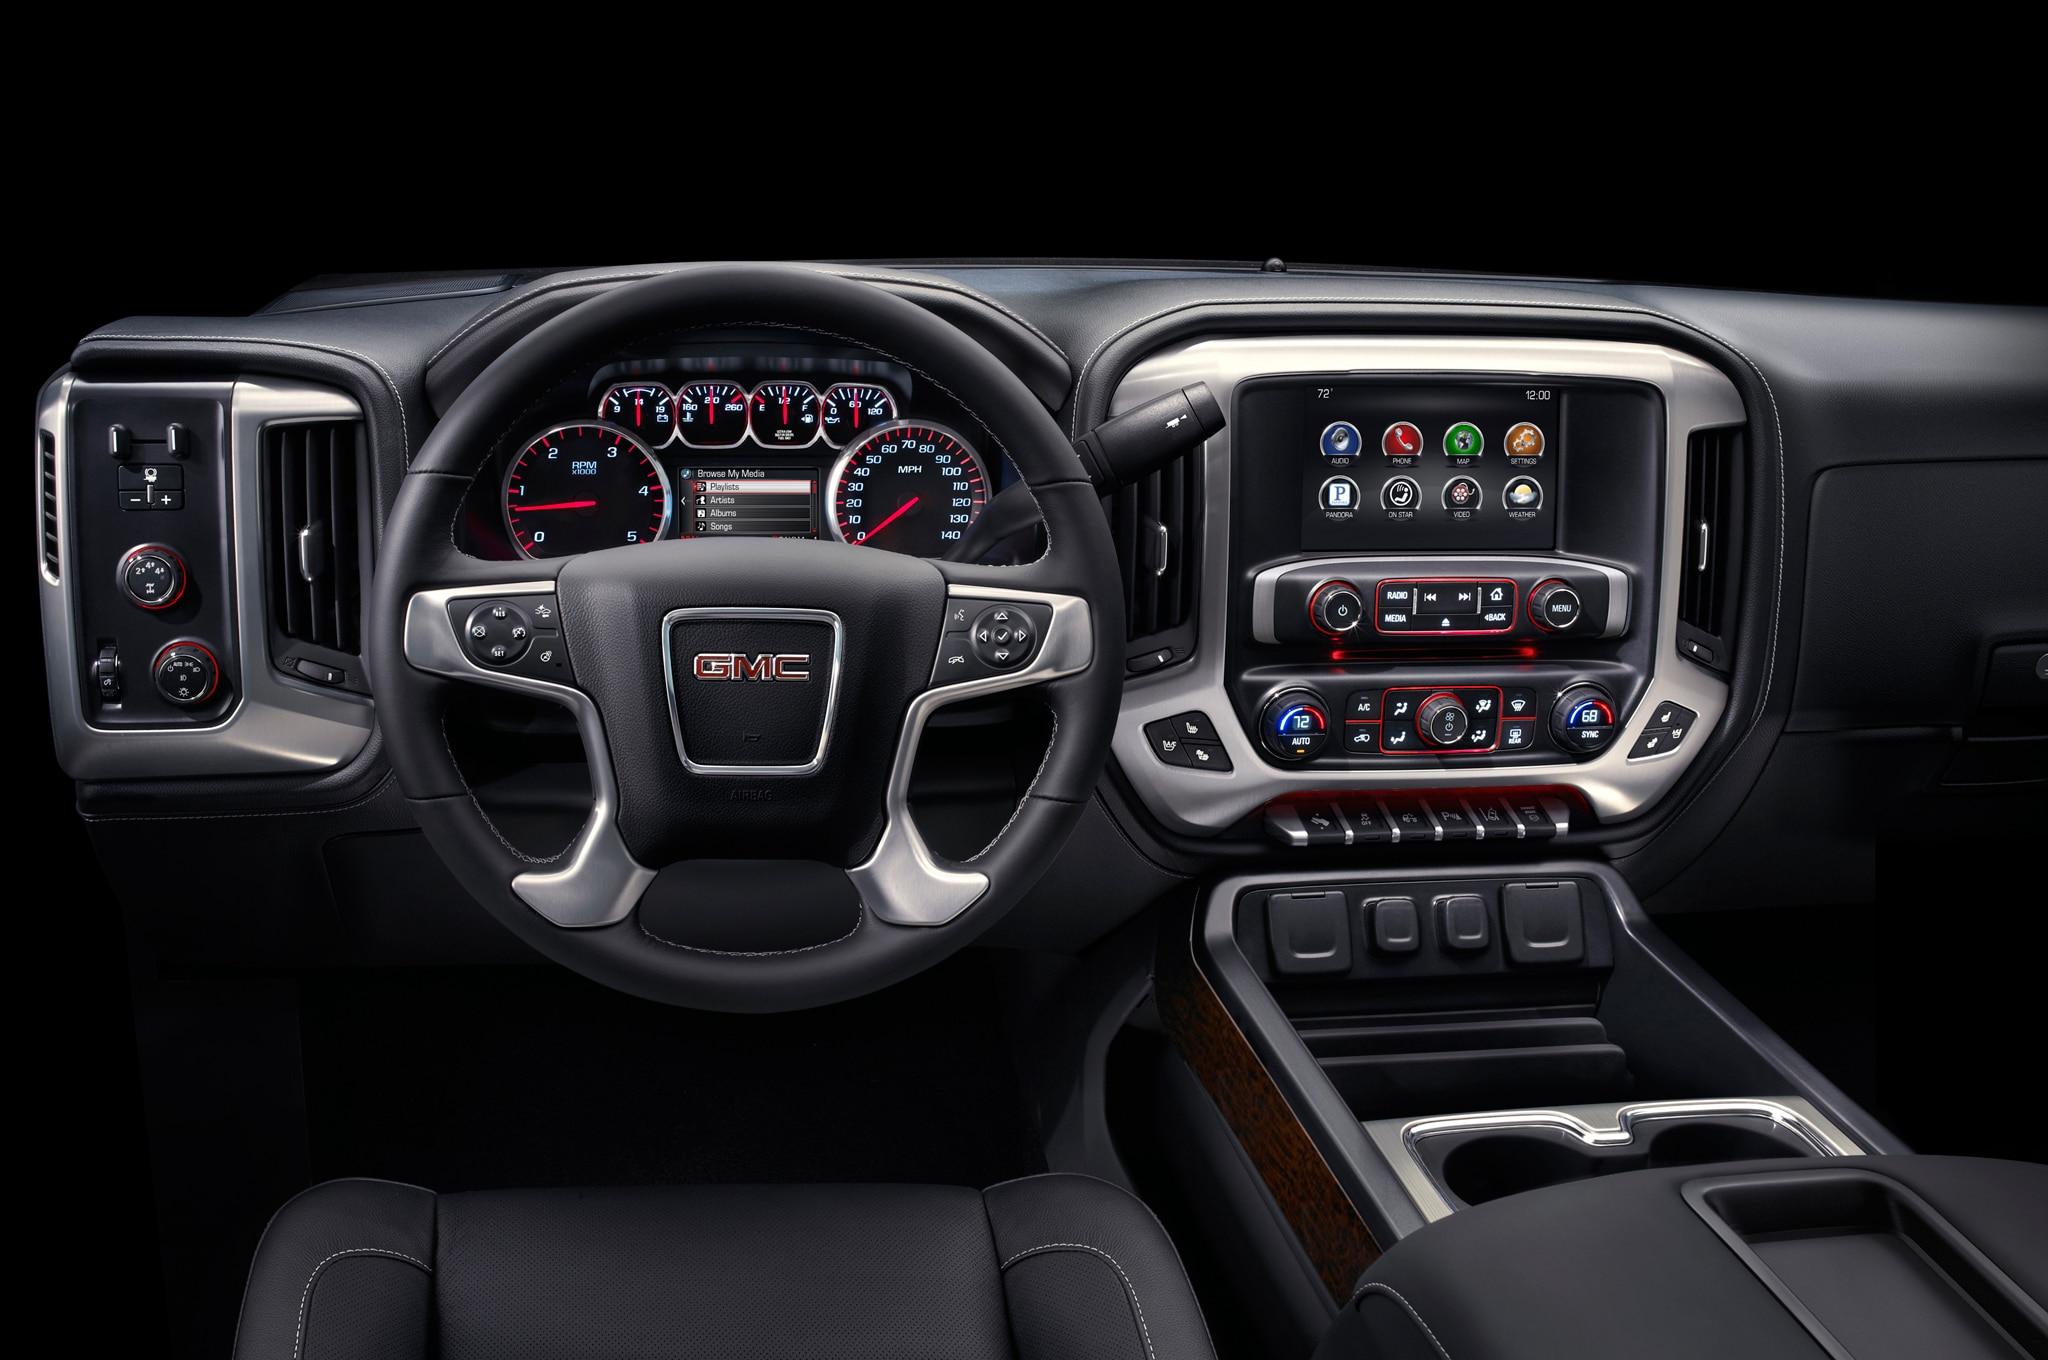 2015 GMC Sierra 3500HD dash